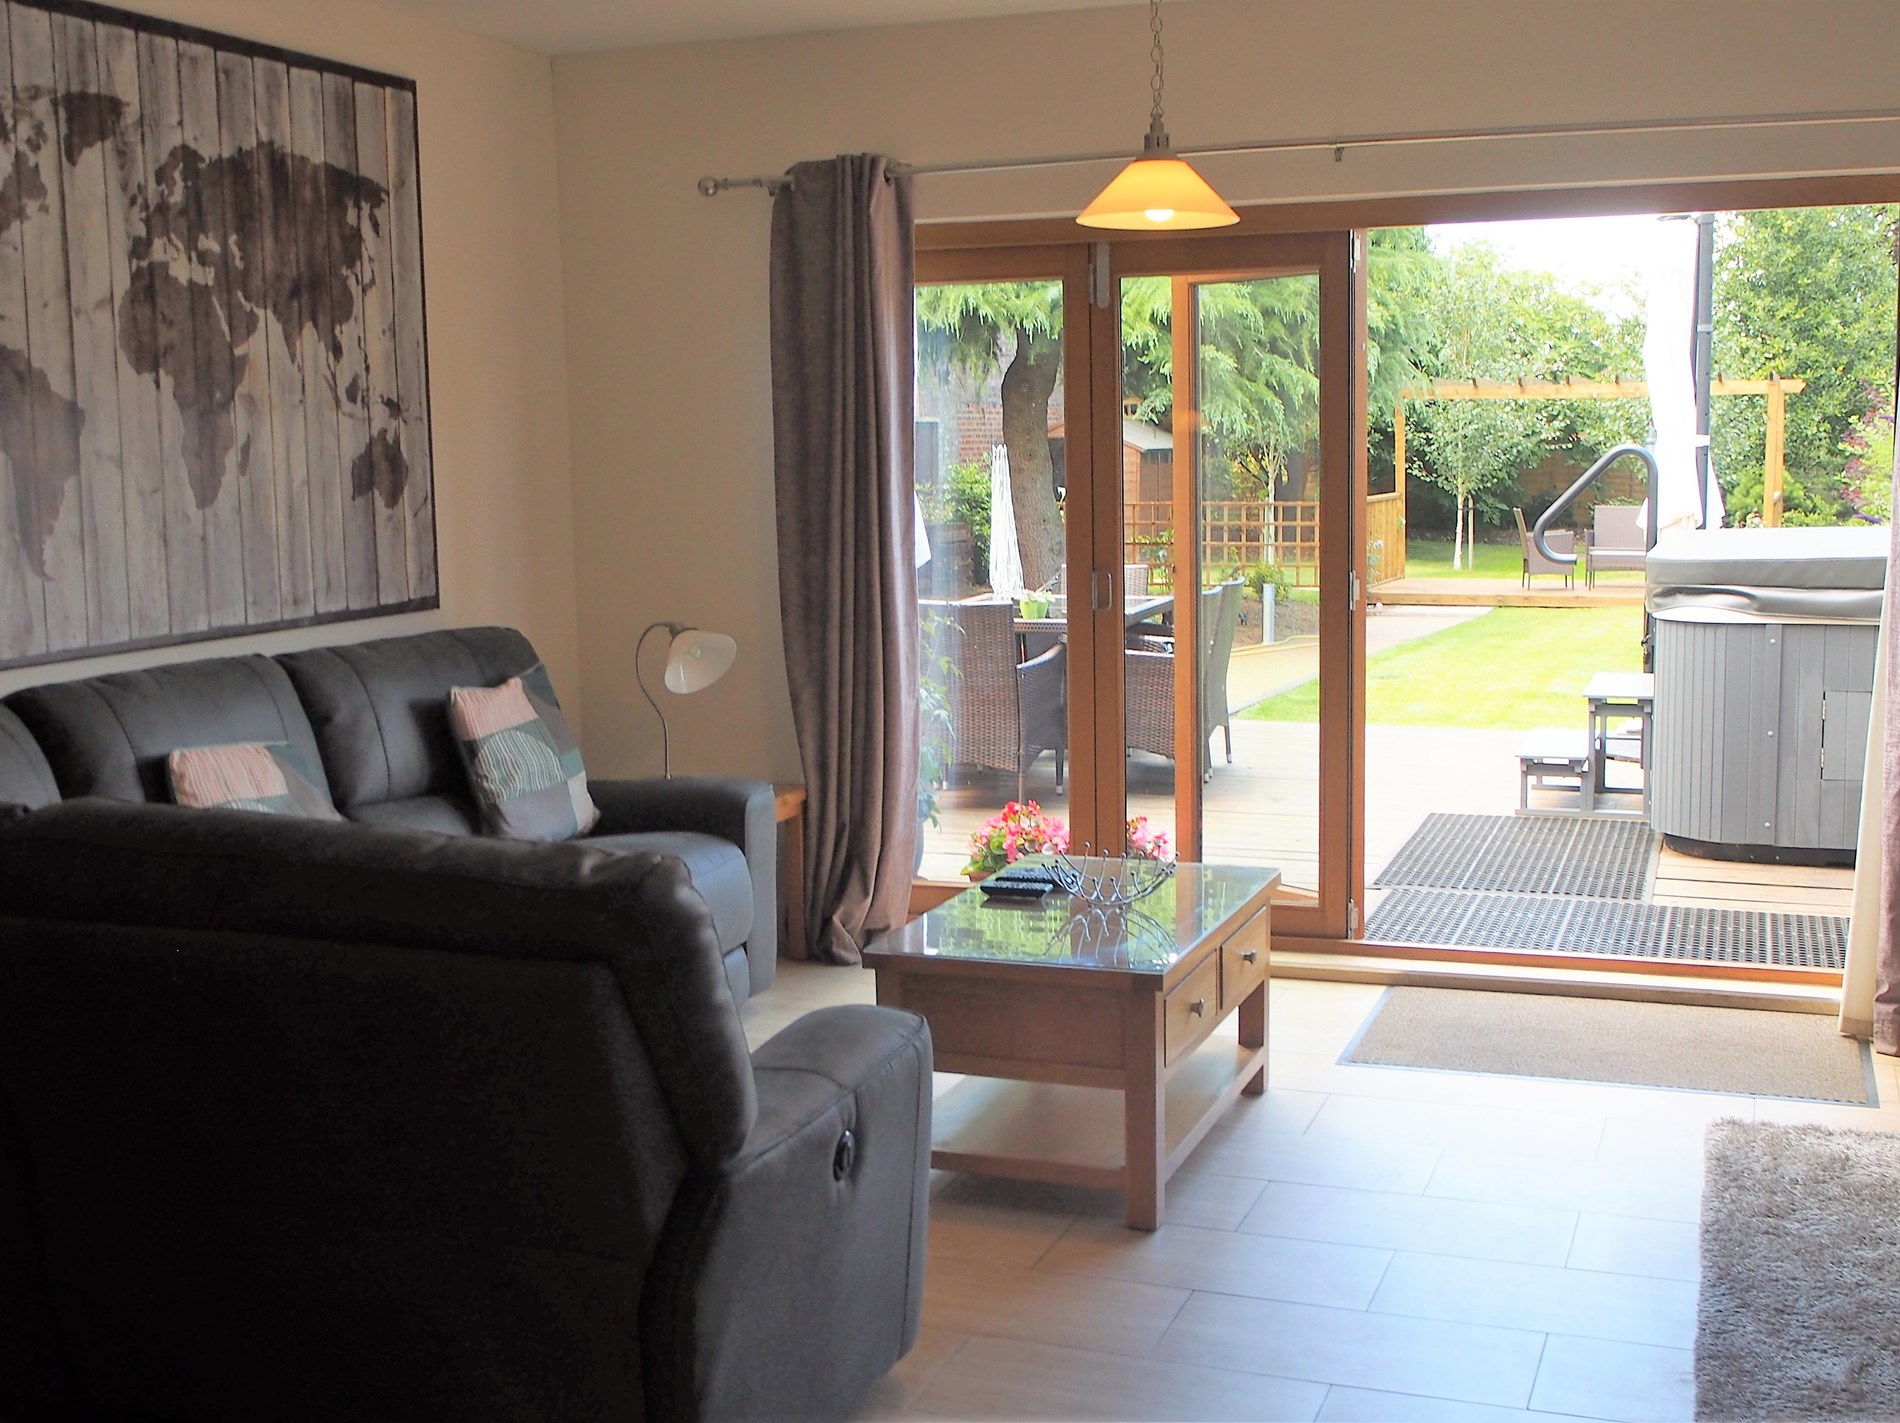 3 Bedroom Cottage in King's Lynn, East Anglia